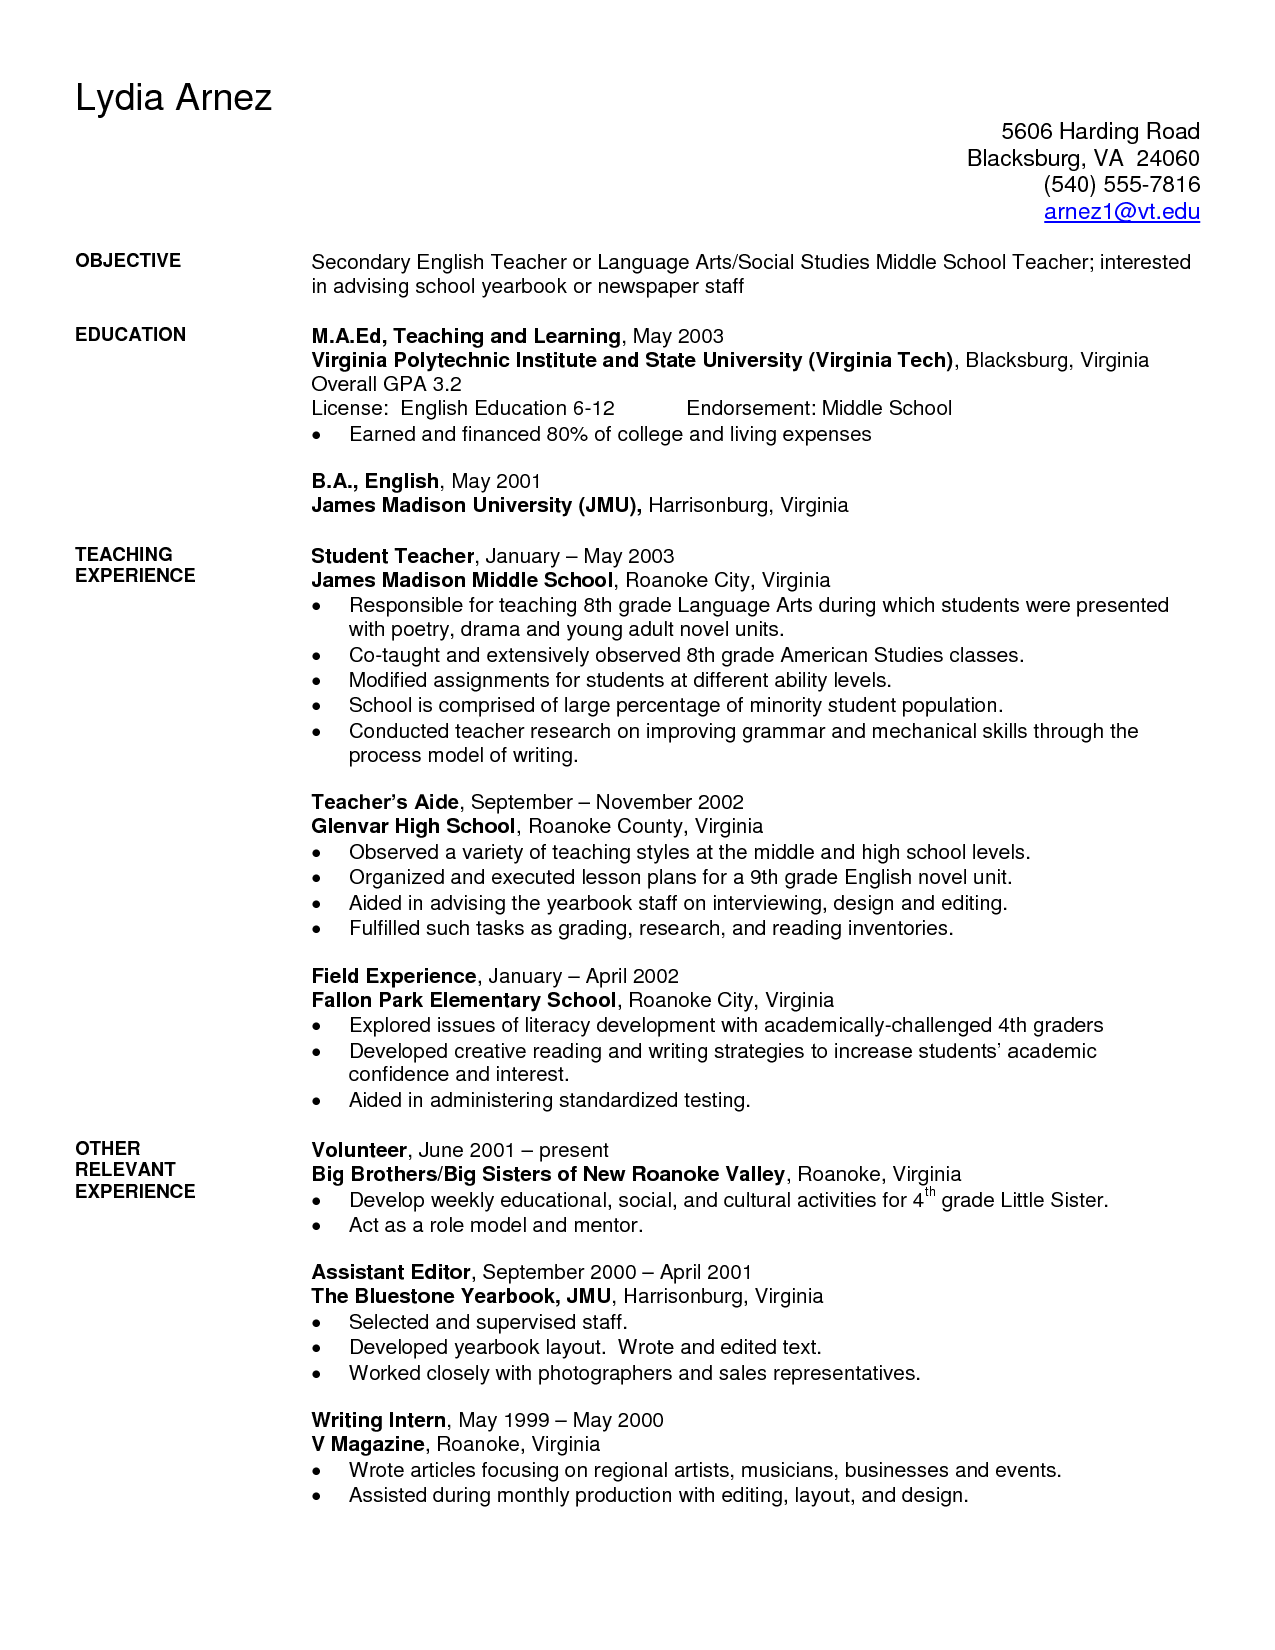 Resume Education Example Amusing Art Teacher Resume Examples  Sample Secondary Teacher Resume Review